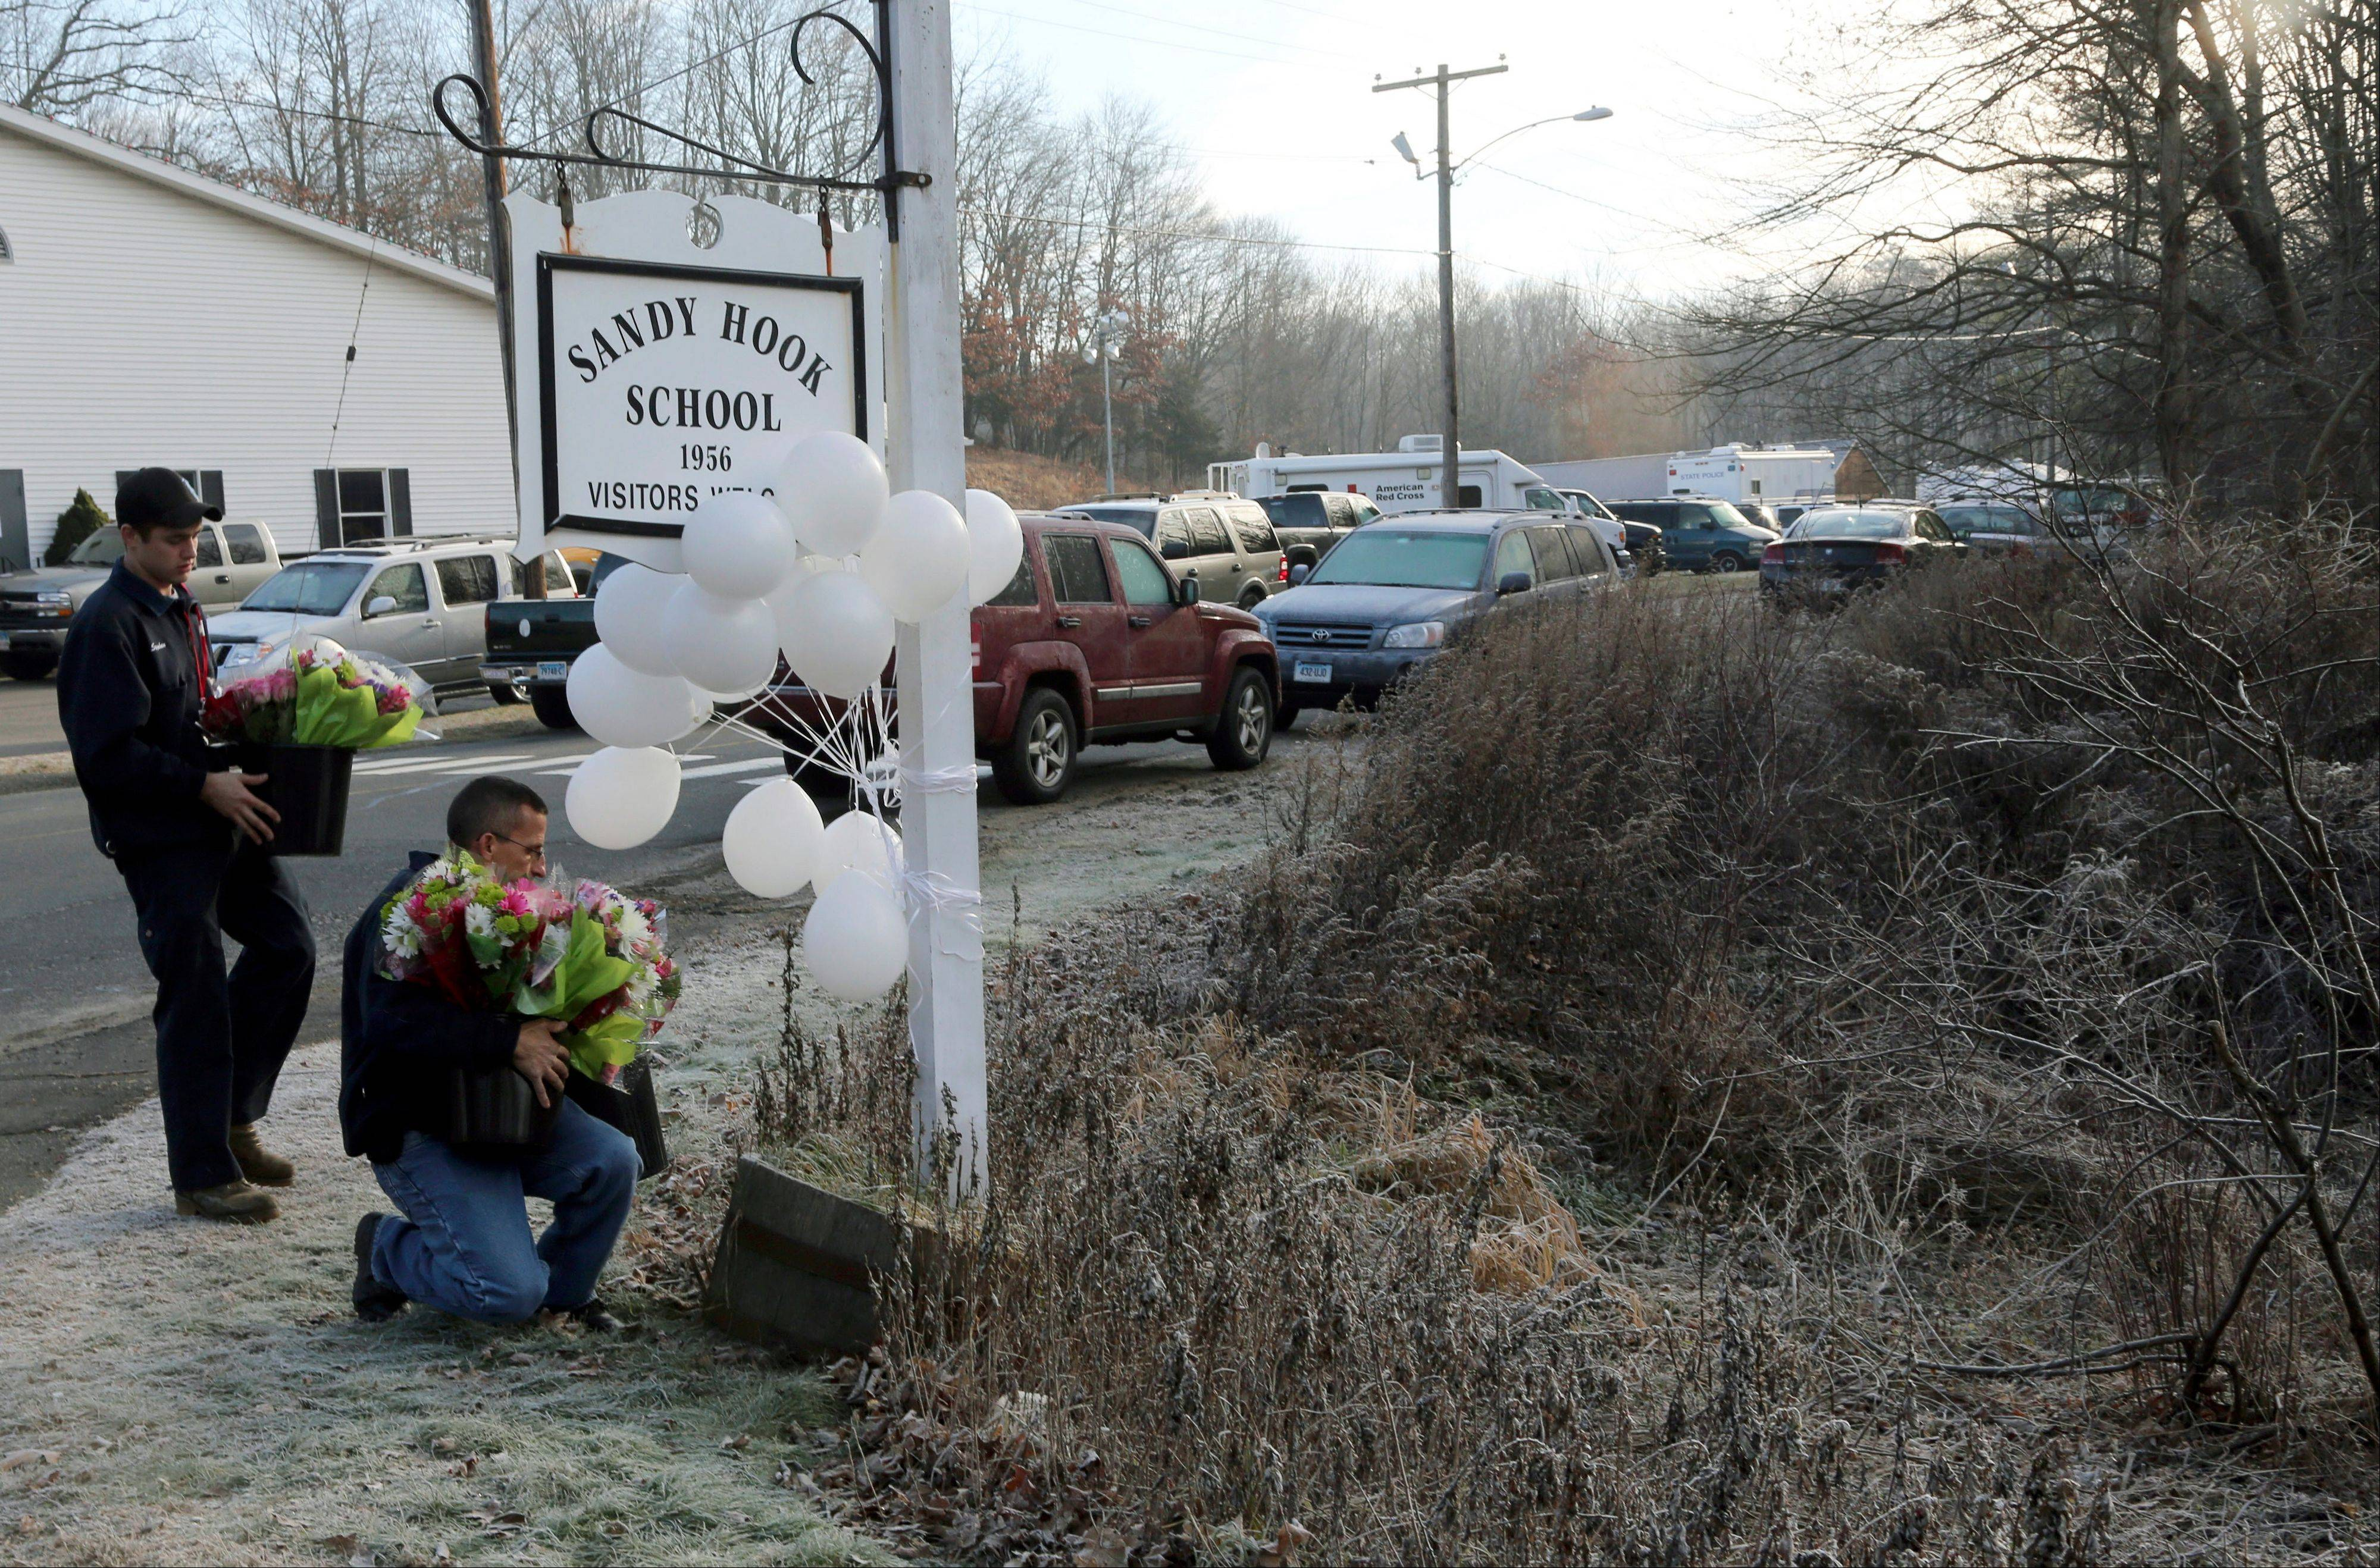 A couple of volunteer firefighters place flowers at a makeshift memorial at a sign for the Sandy Hook Elementary school, Saturday, Dec. 15, in Sandy Hook village of Newtown, Conn. The massacre of 26 children and adults at Sandy Hook Elementary school elicited horror and soul-searching around the world even as it raised more basic questions about why the gunman would have been driven to such a crime and how he chose his victims.